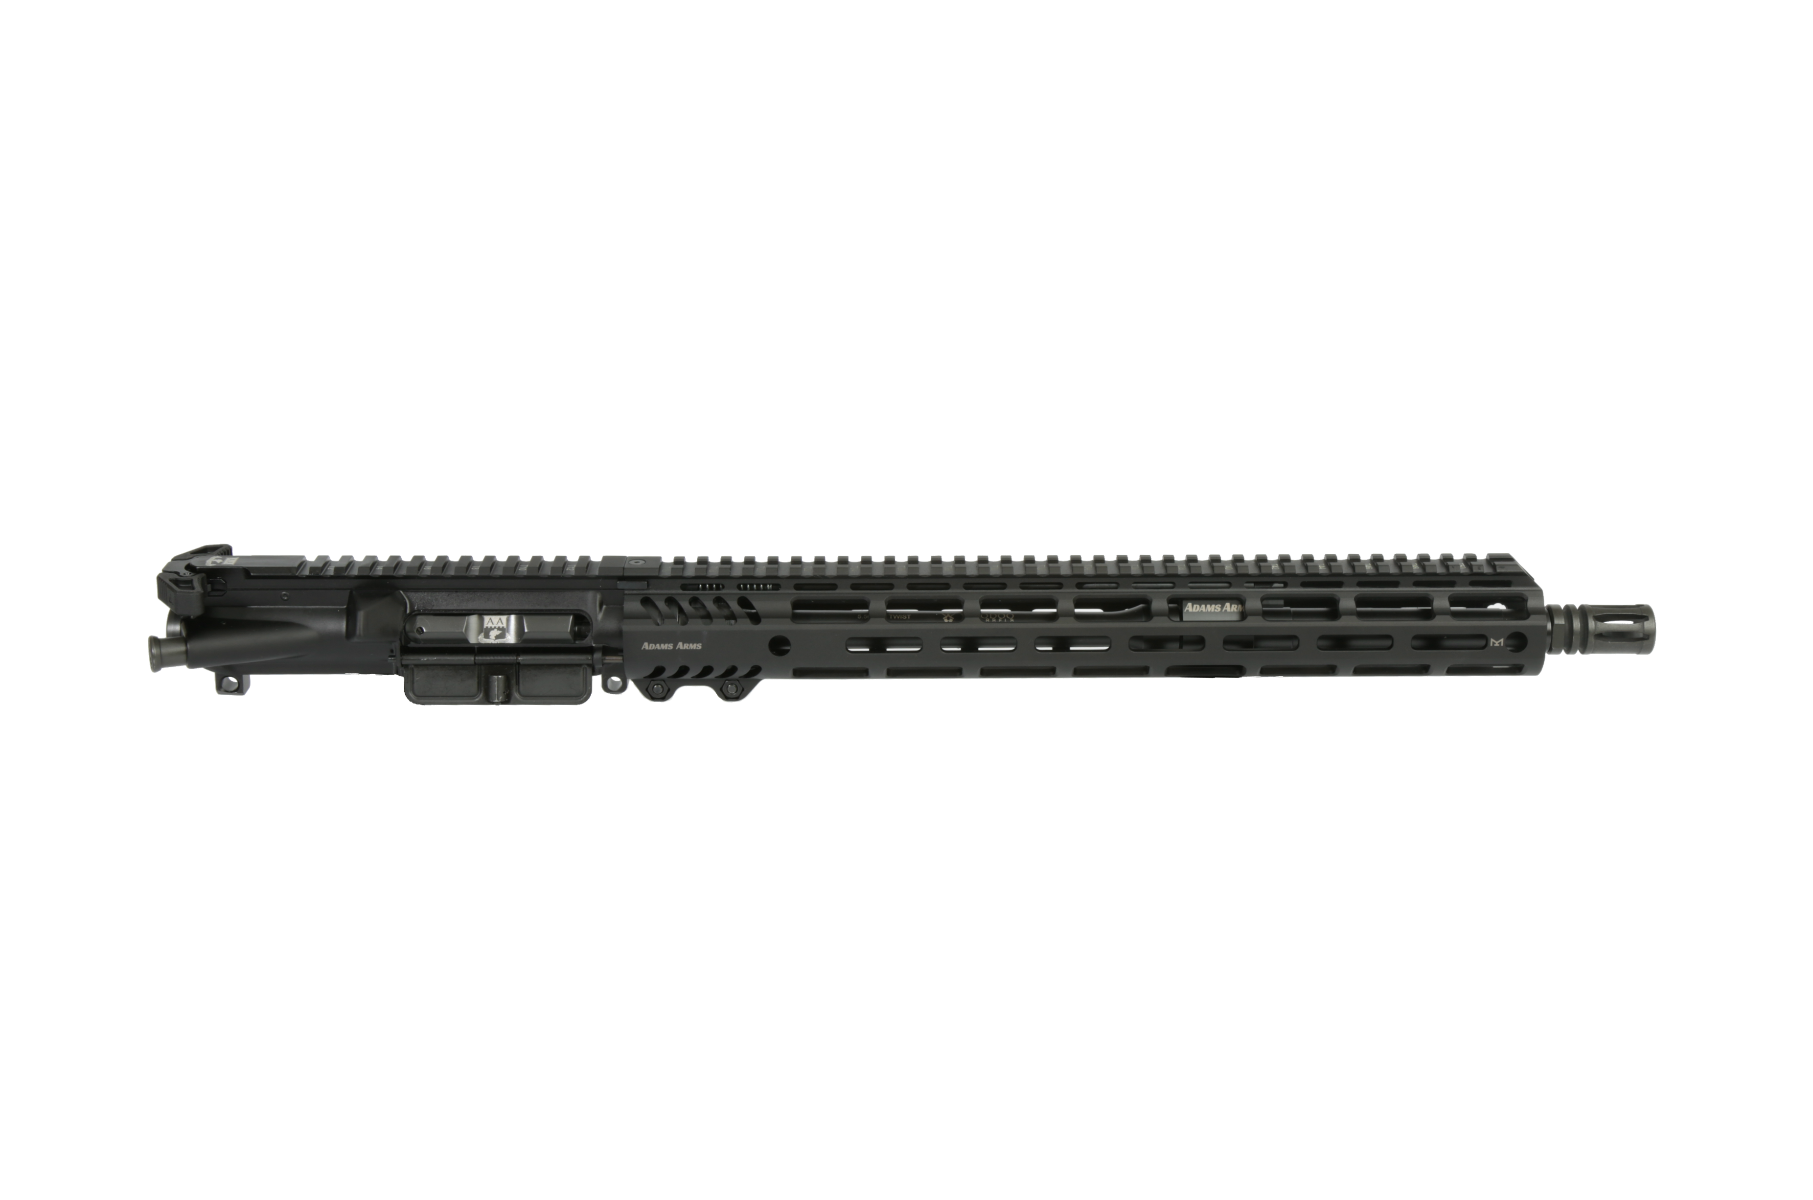 Adams Arms P2 5.56 NATO Complete Upper